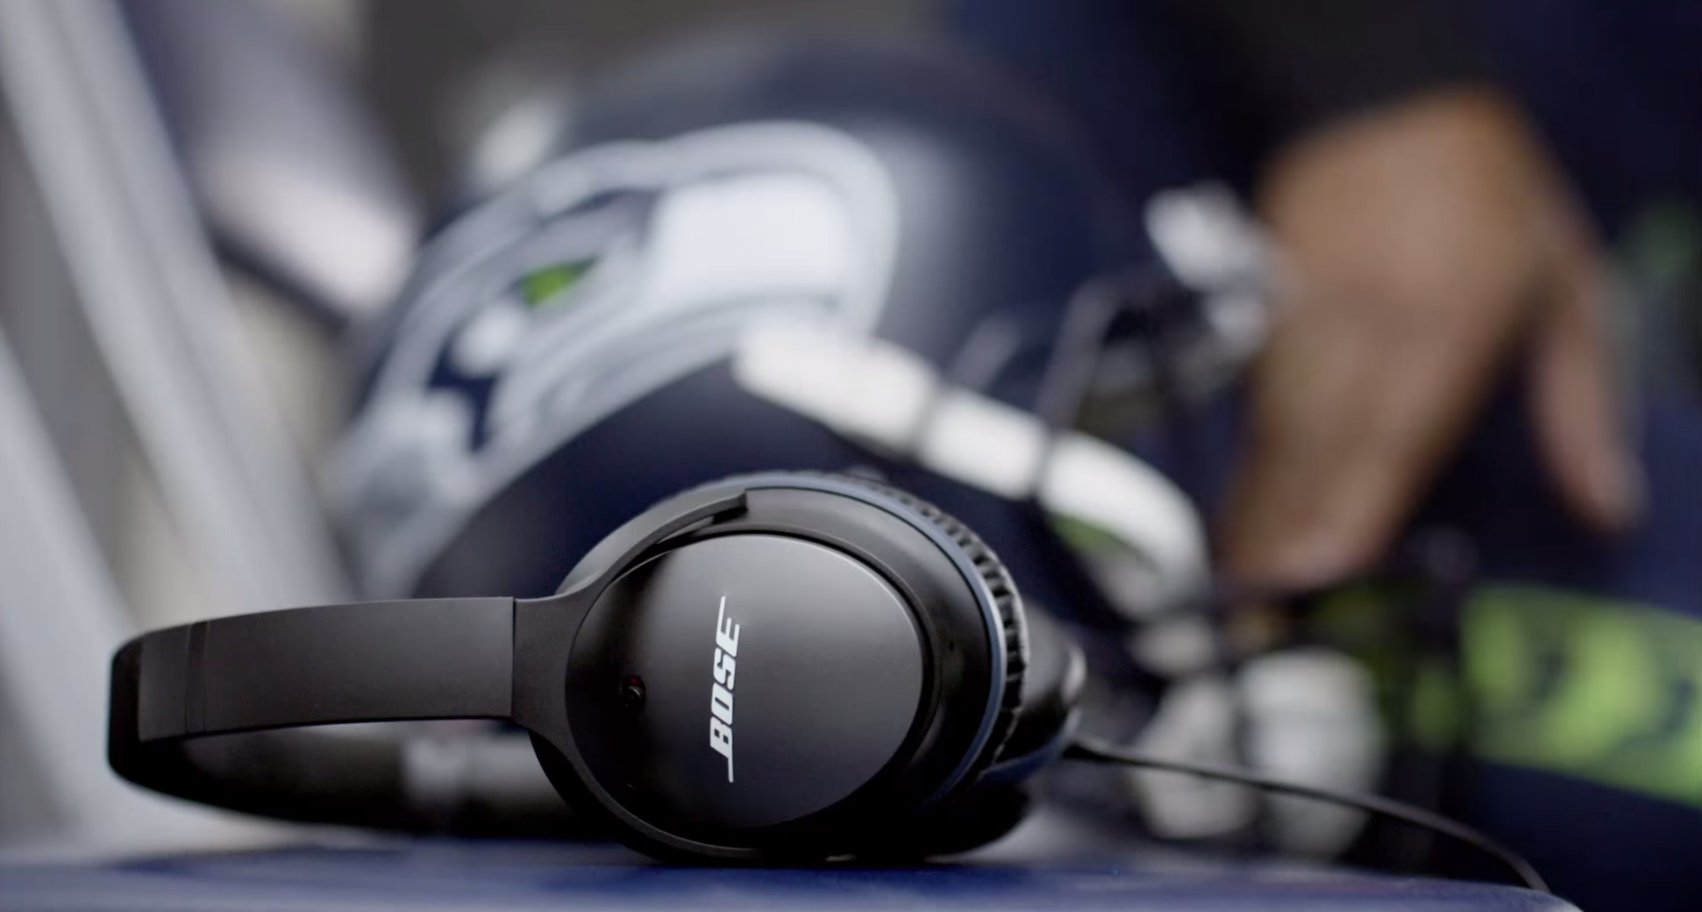 beats vs bose While the beats sounds very up front, vocals are pulled back a bit on the bose and not as much in your face the result is a sound which is very ple asing to listen to and not as fatiguing over longer listening sessions.